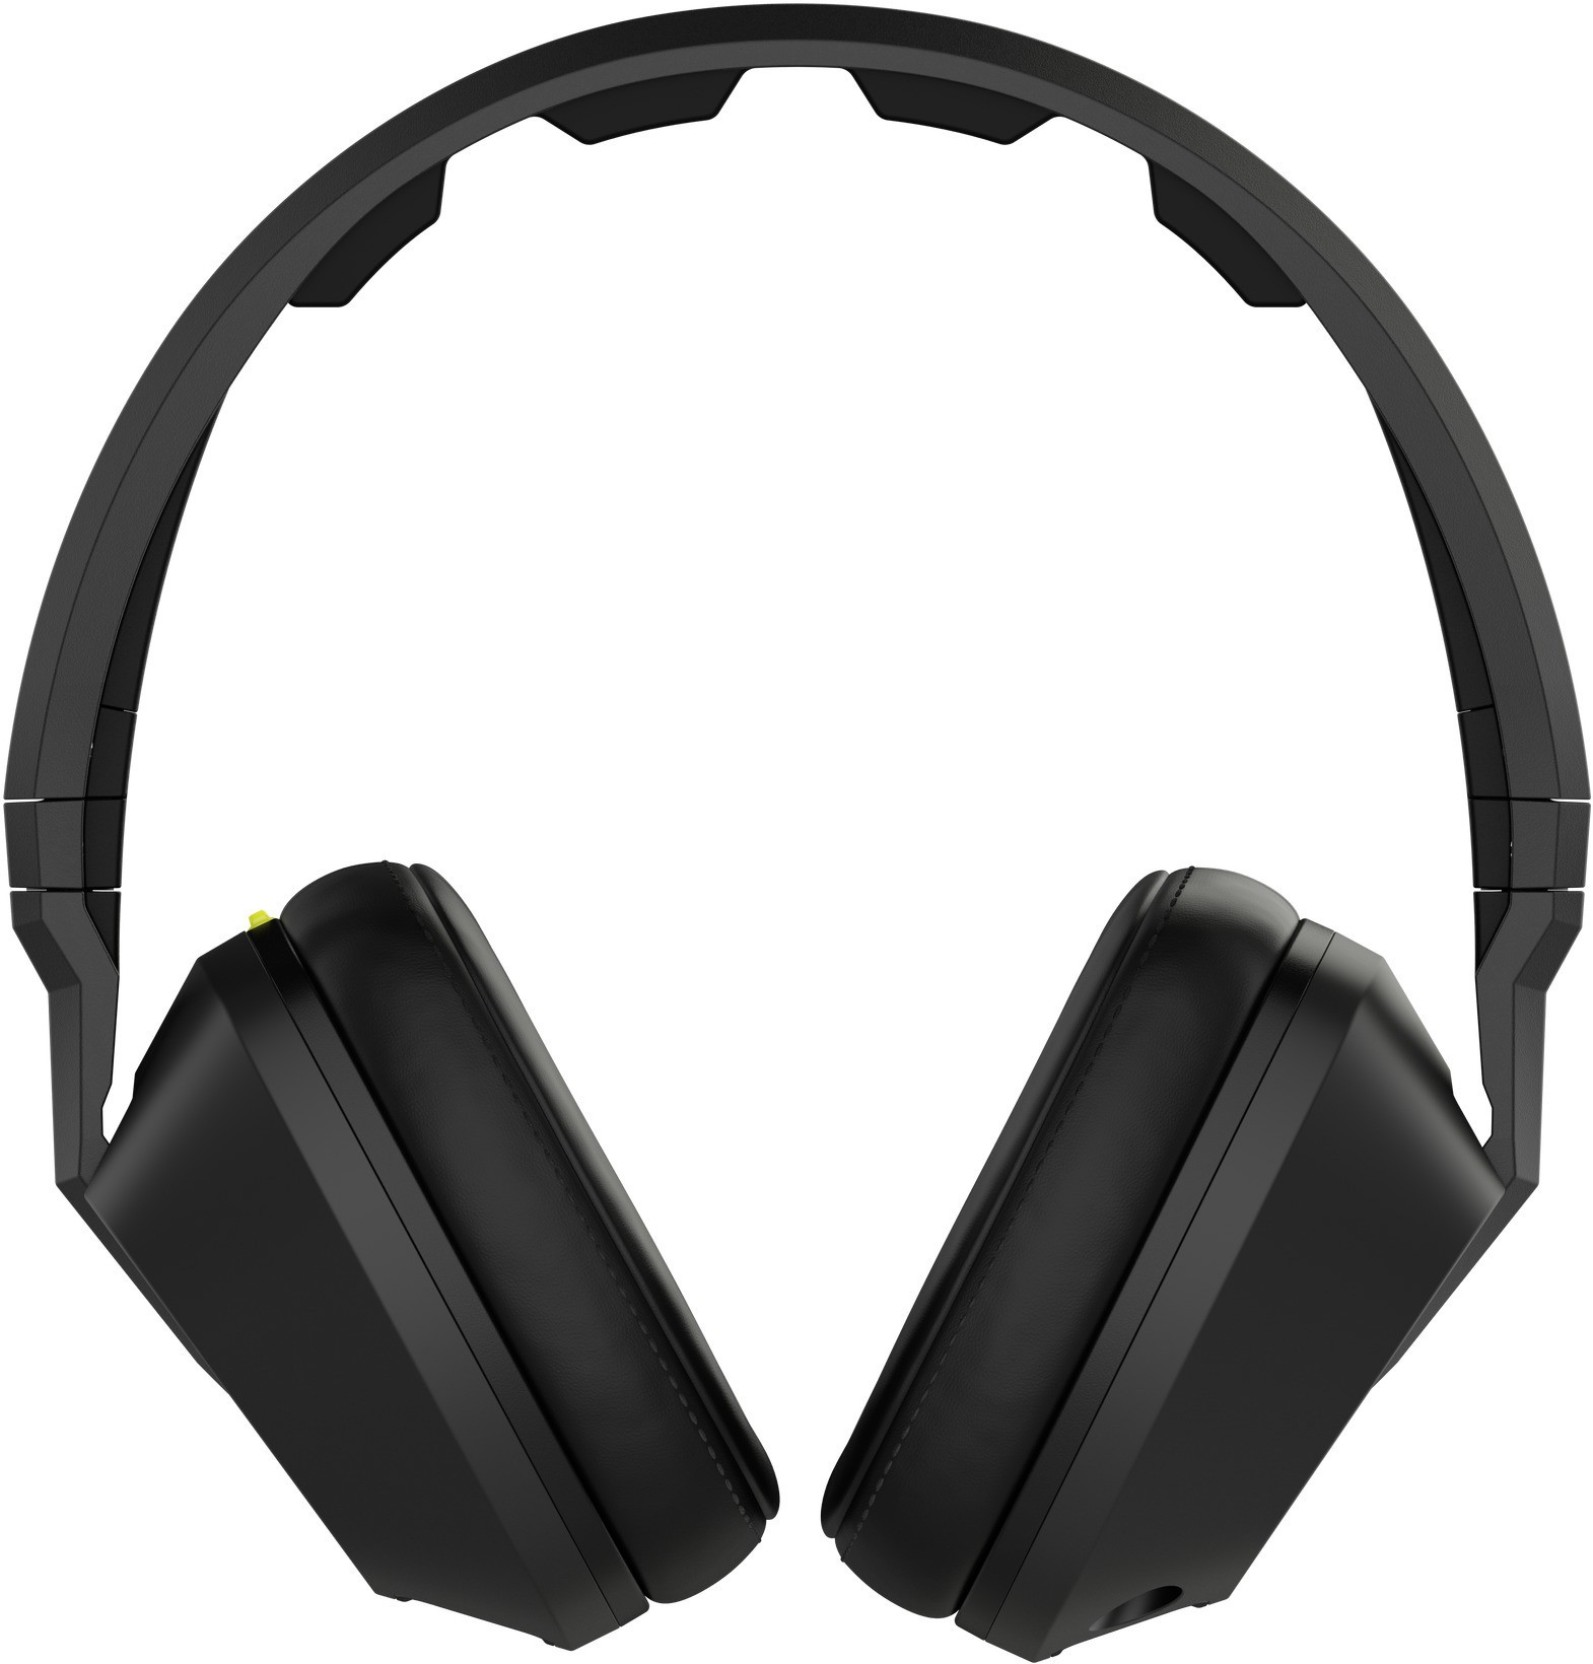 7f7a313fa50 Skullcandy Crusher Headset with mic Price in India - Buy Skullcandy ...